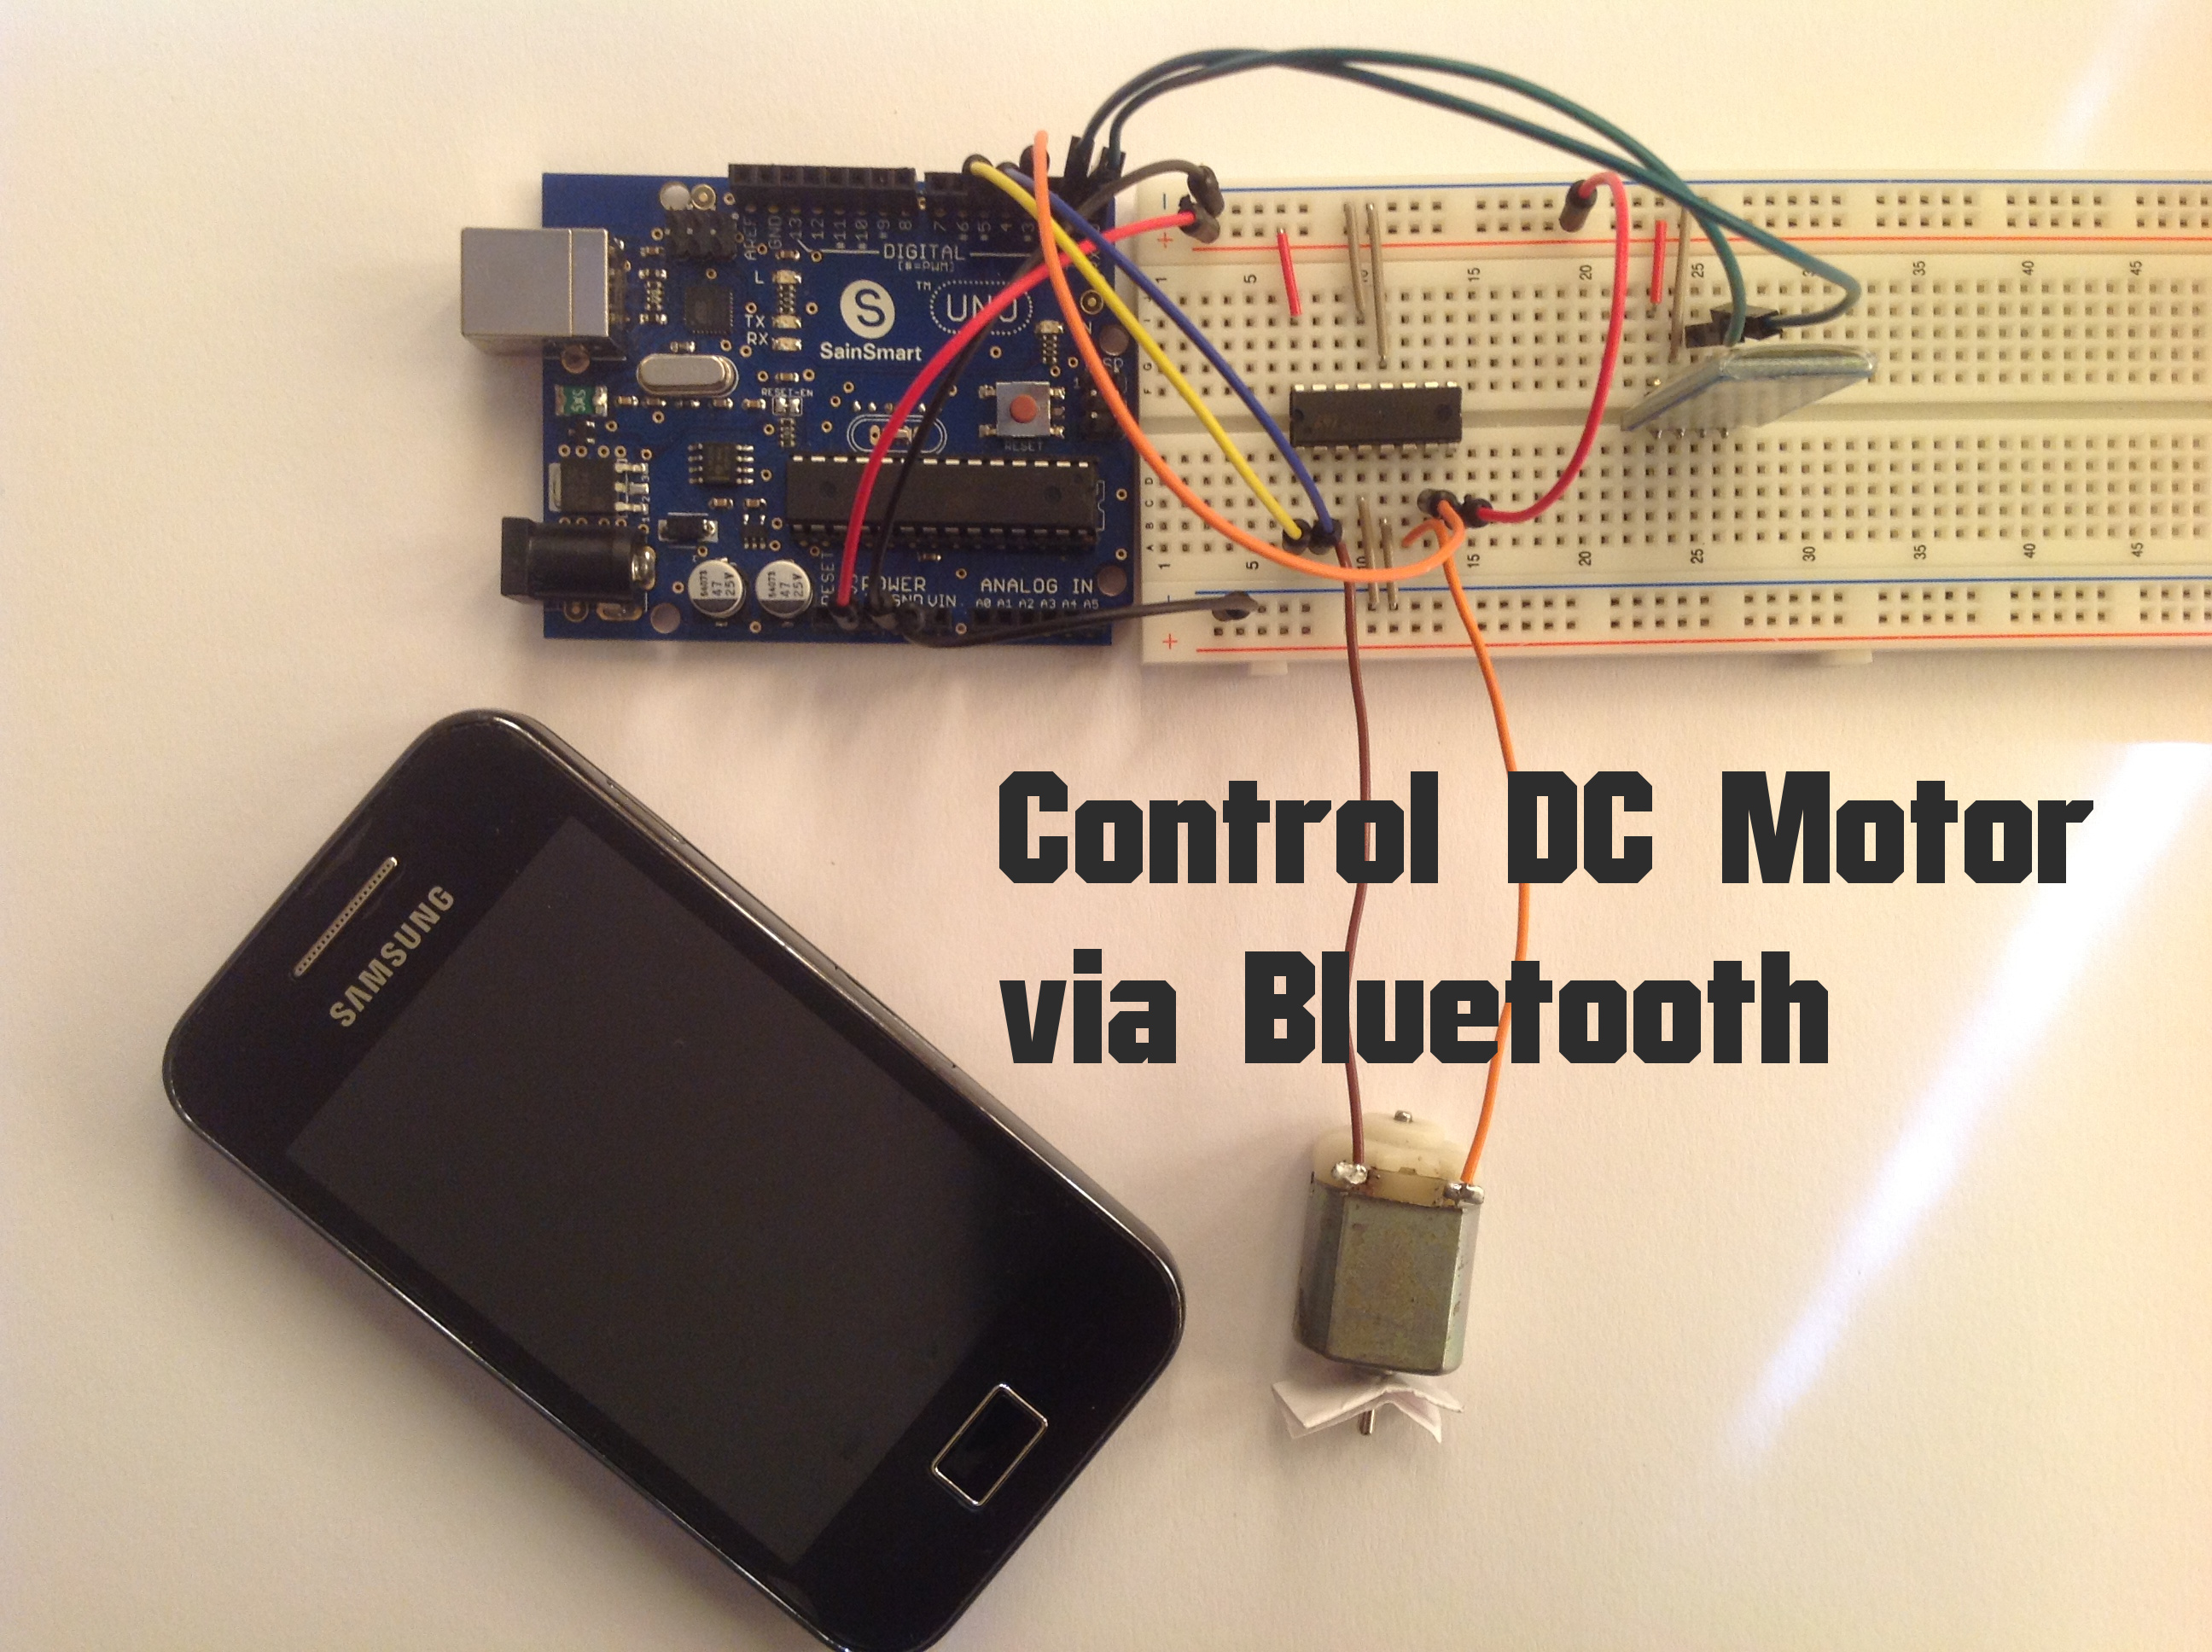 arduino control dc motor via bluetooth random nerd tutorialsTelephone Controlled Motor Page 7 Free Microcontroller Projects #15